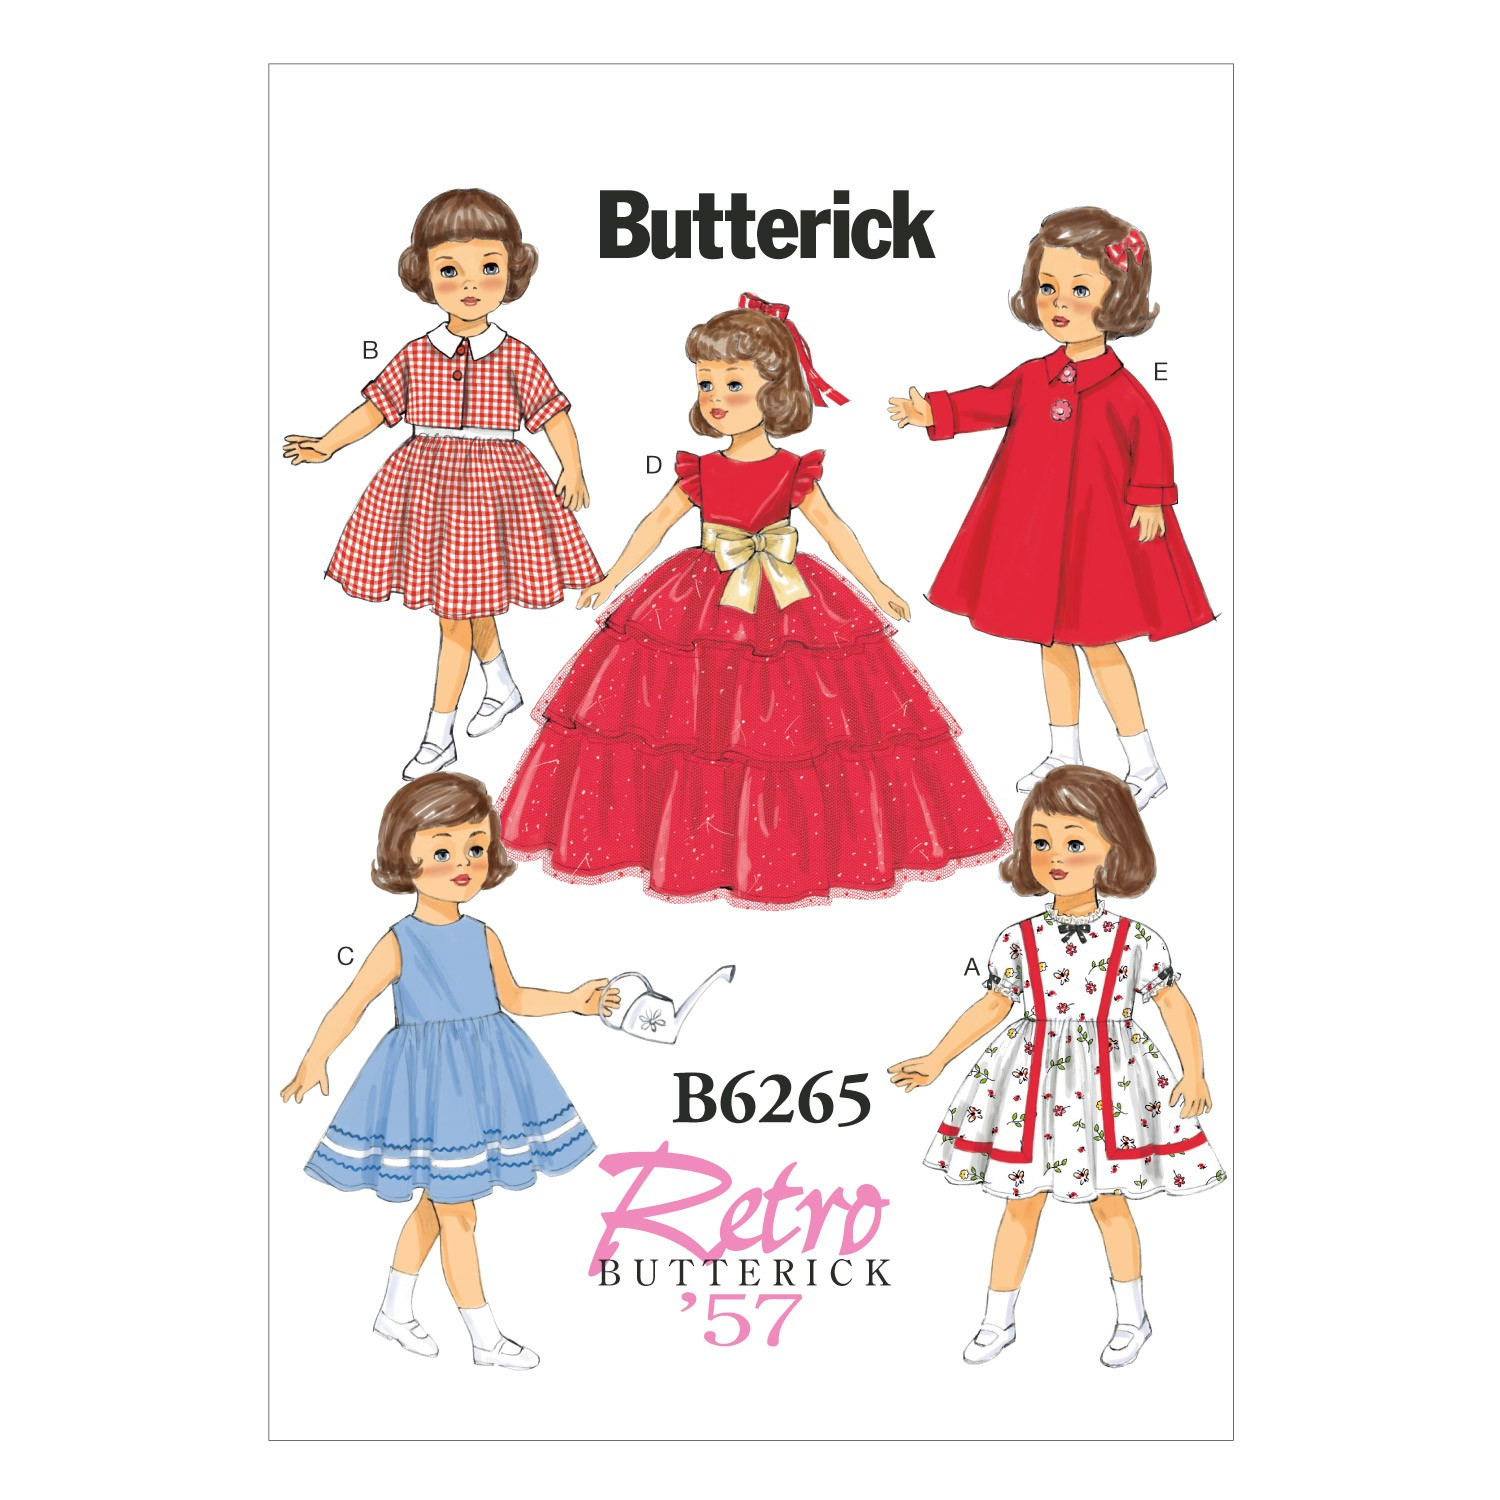 Butterick Sewing Pattern 5757 Misses' Elasticated Skirt